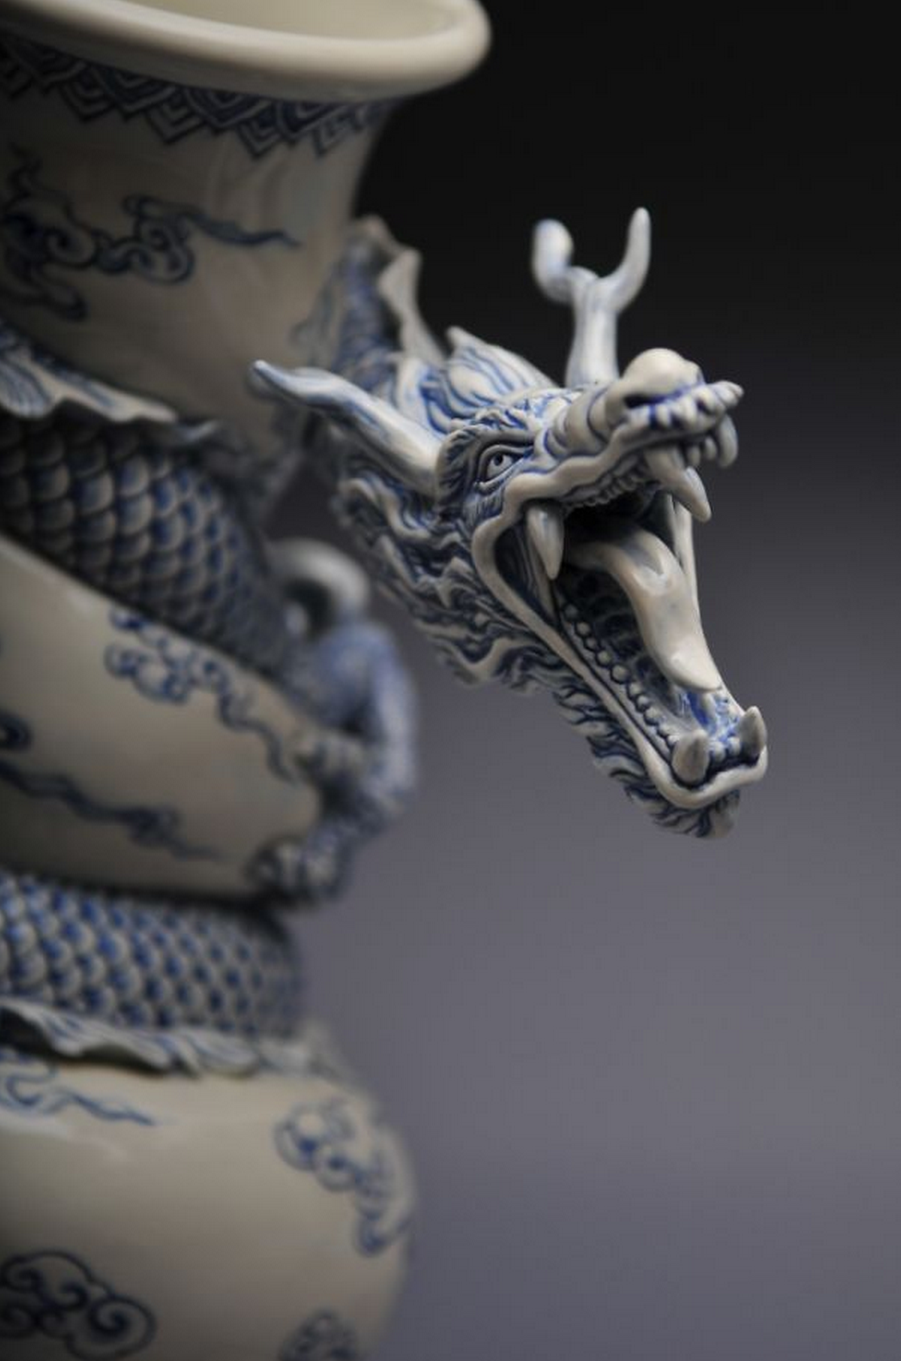 Art Beautiful Chinese Dragon Vase Ceated By Sculptor